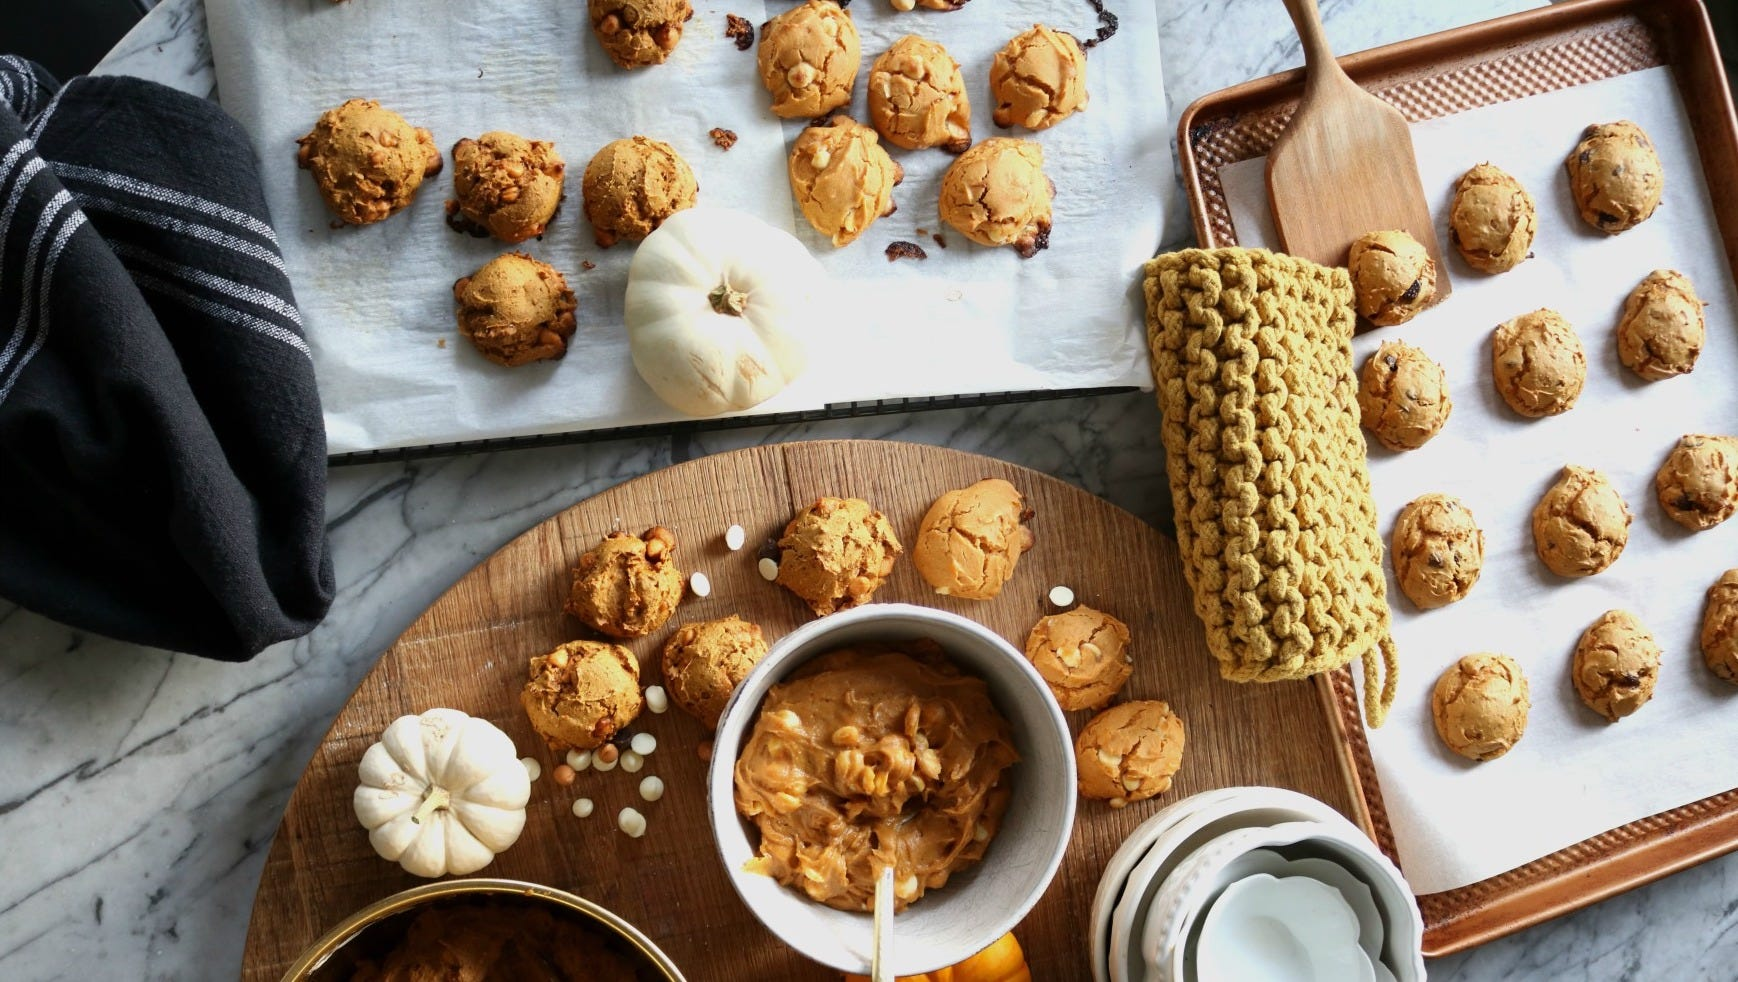 A counter with a baking sheet with cookies on it and a board with pumpkin and other ingredients